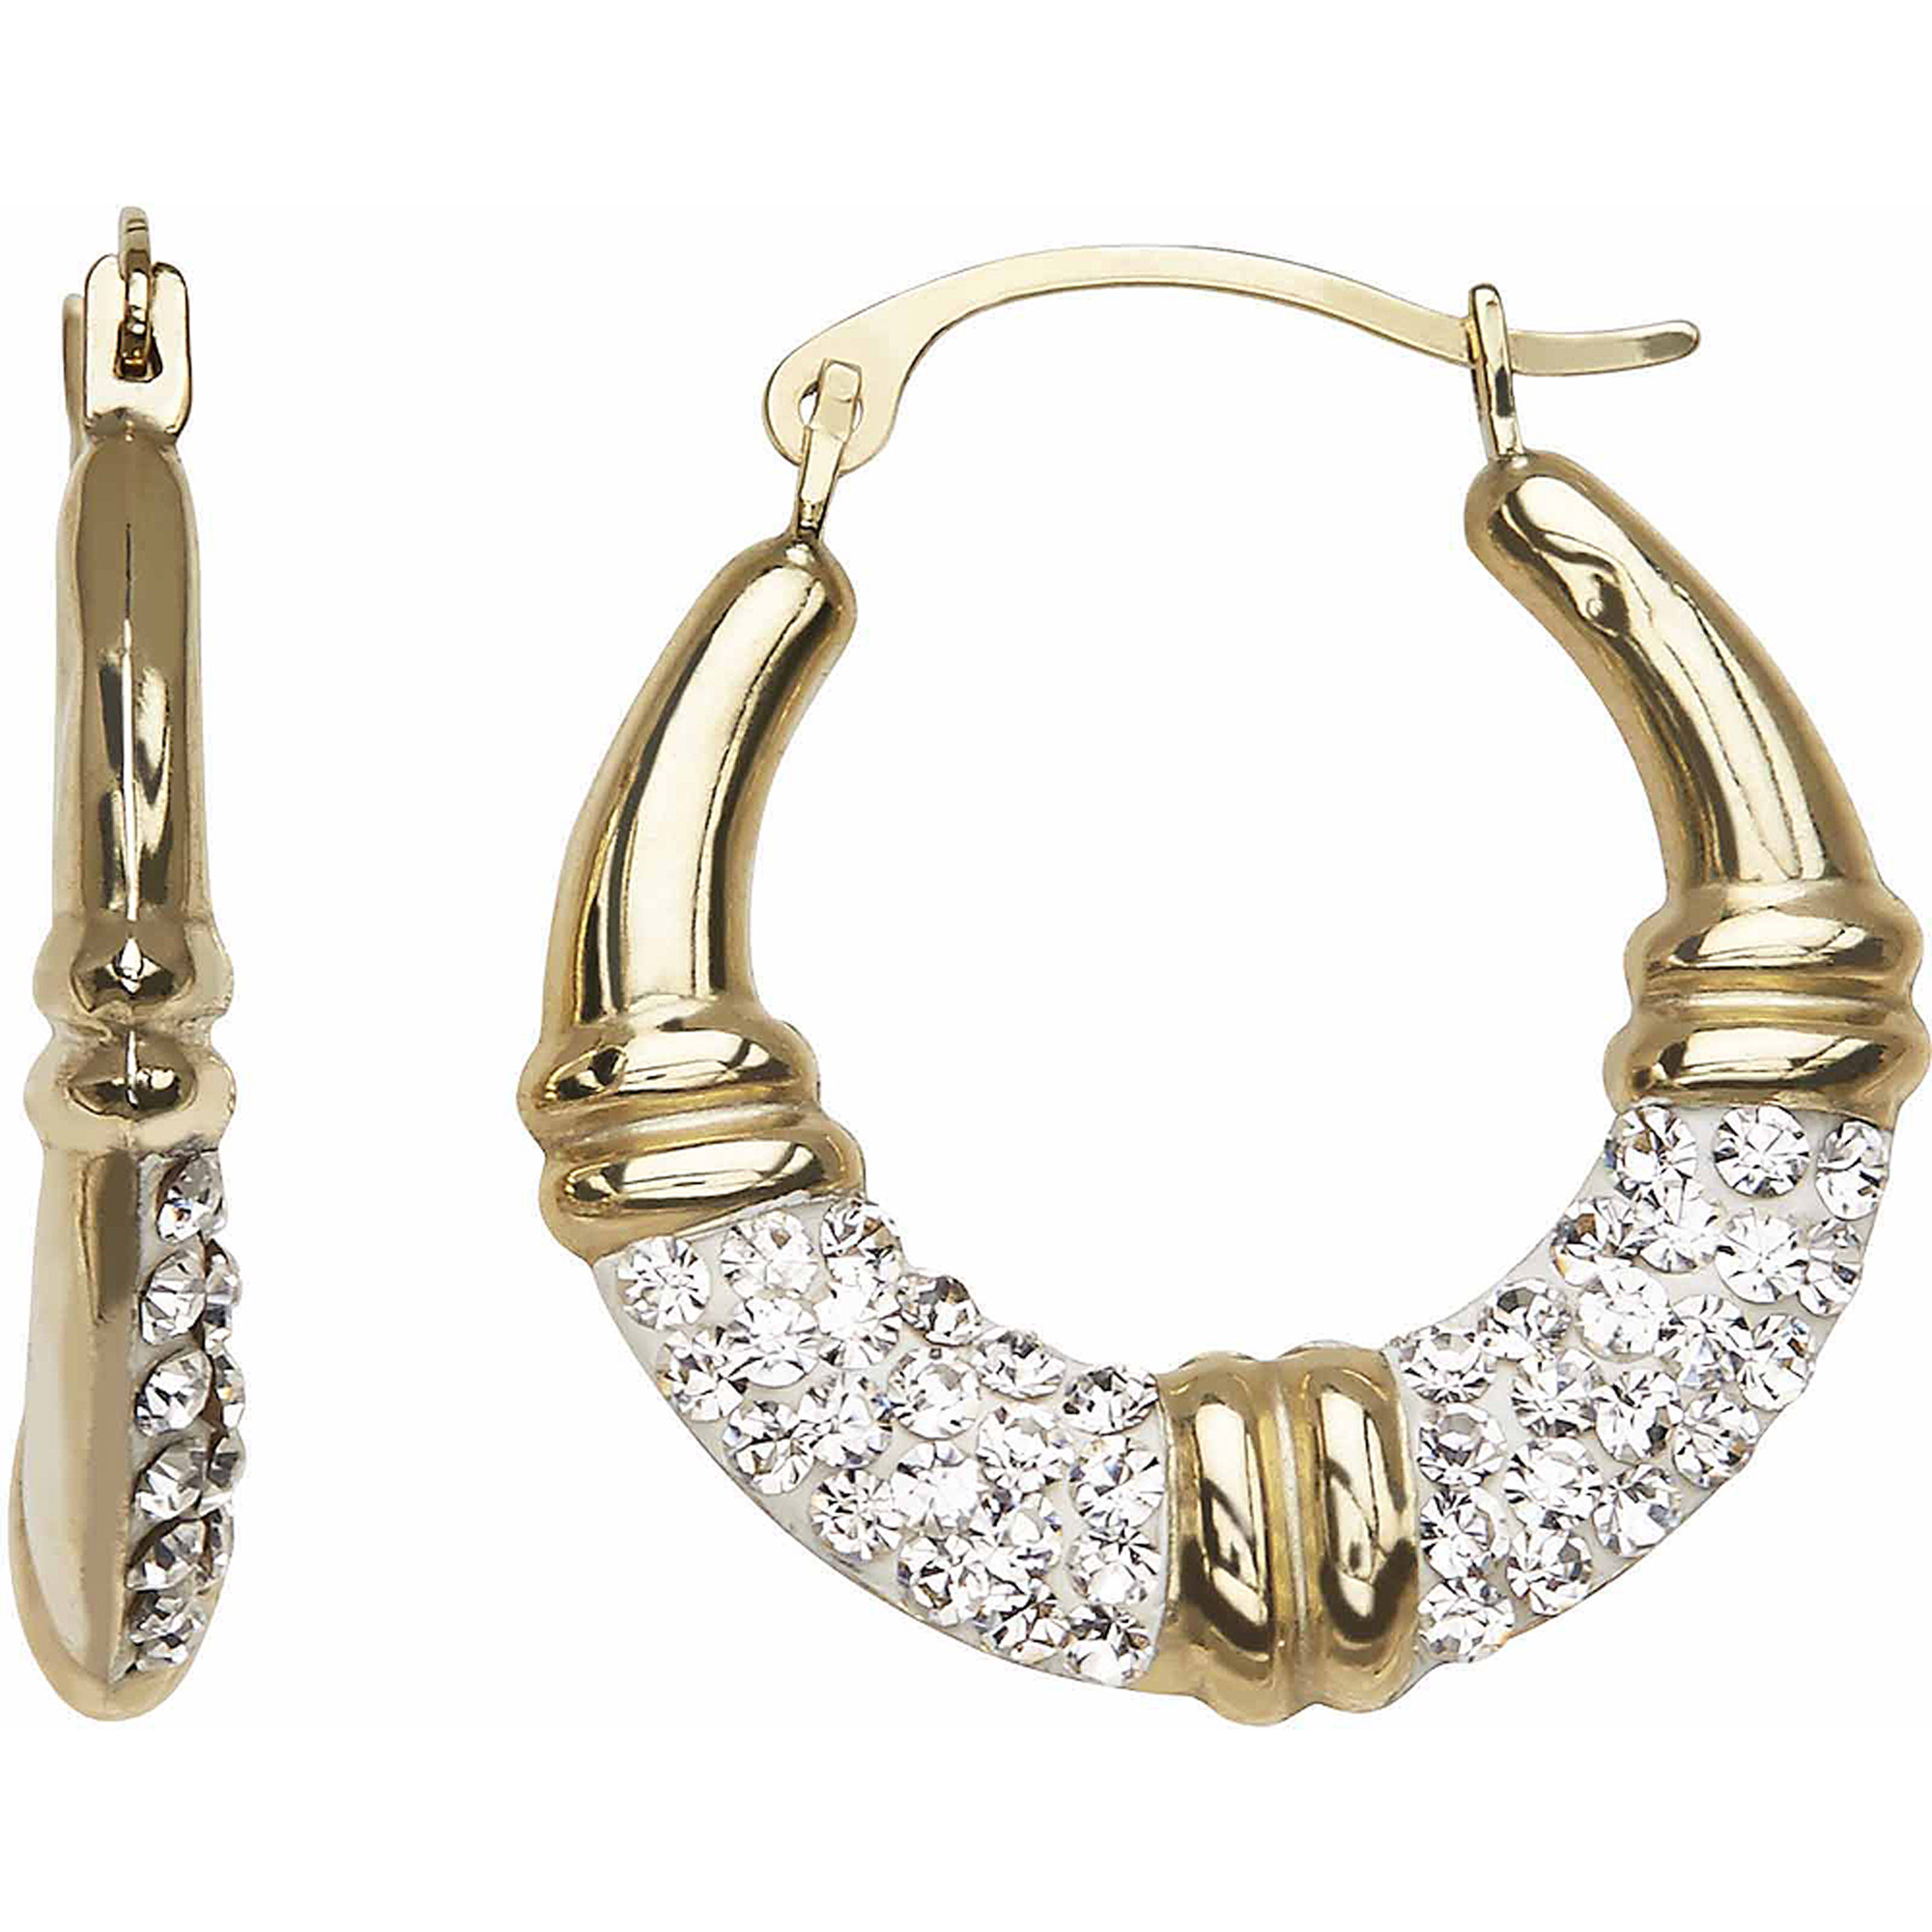 Simply Gold 10kt Yellow Gold Medium Ribbed with Crystal Round Hoop Earrings